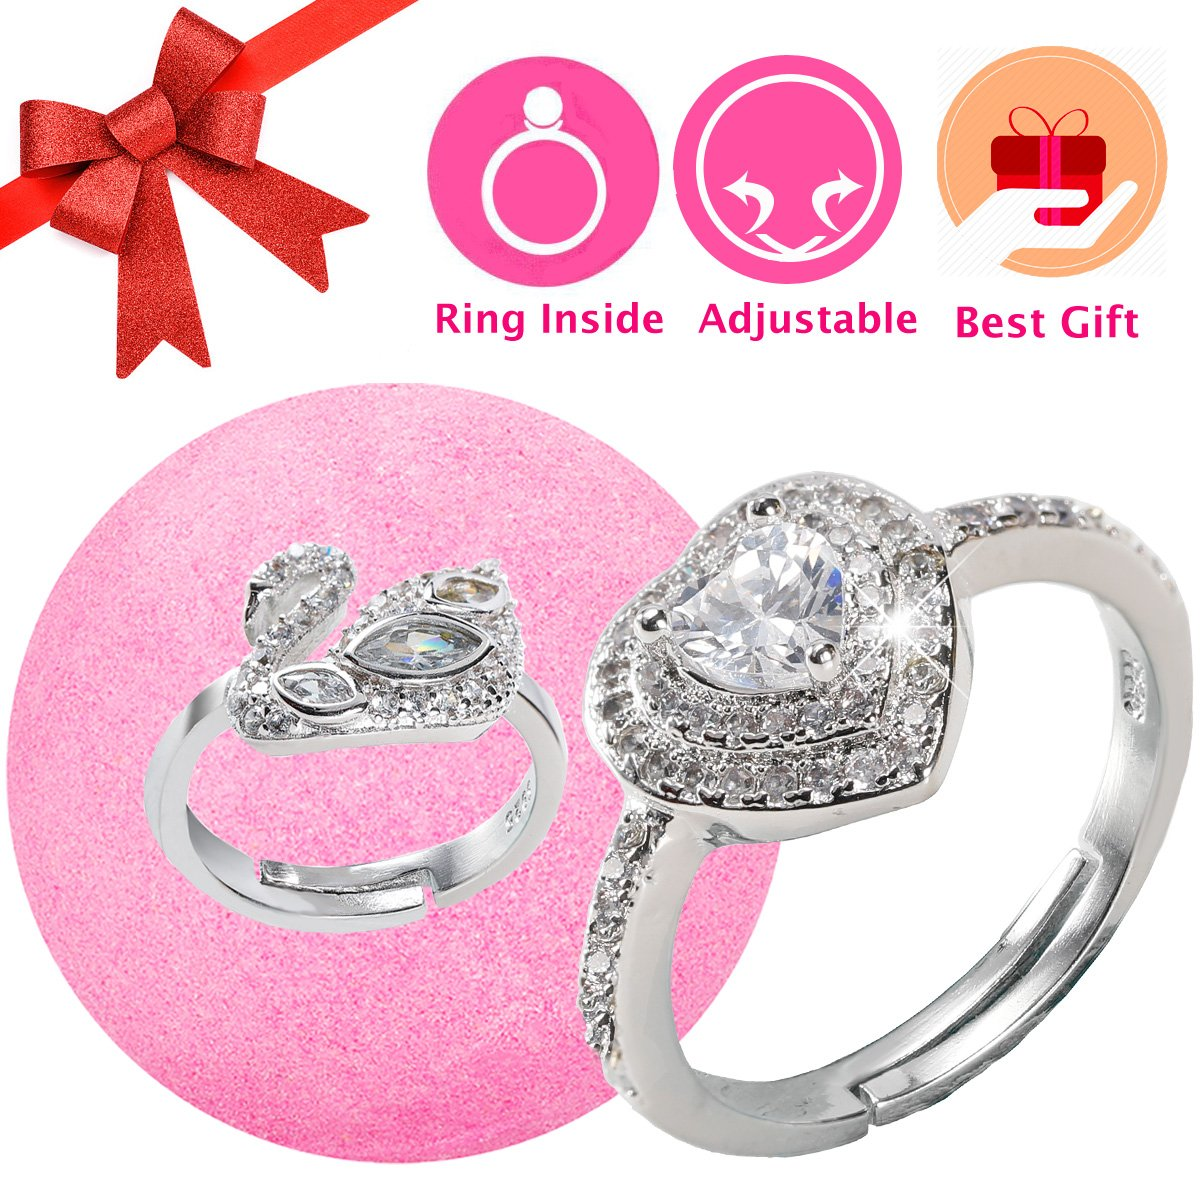 Amazon.com : Bath Bomb with Ring Surprise Prizes Gift Inside for ...